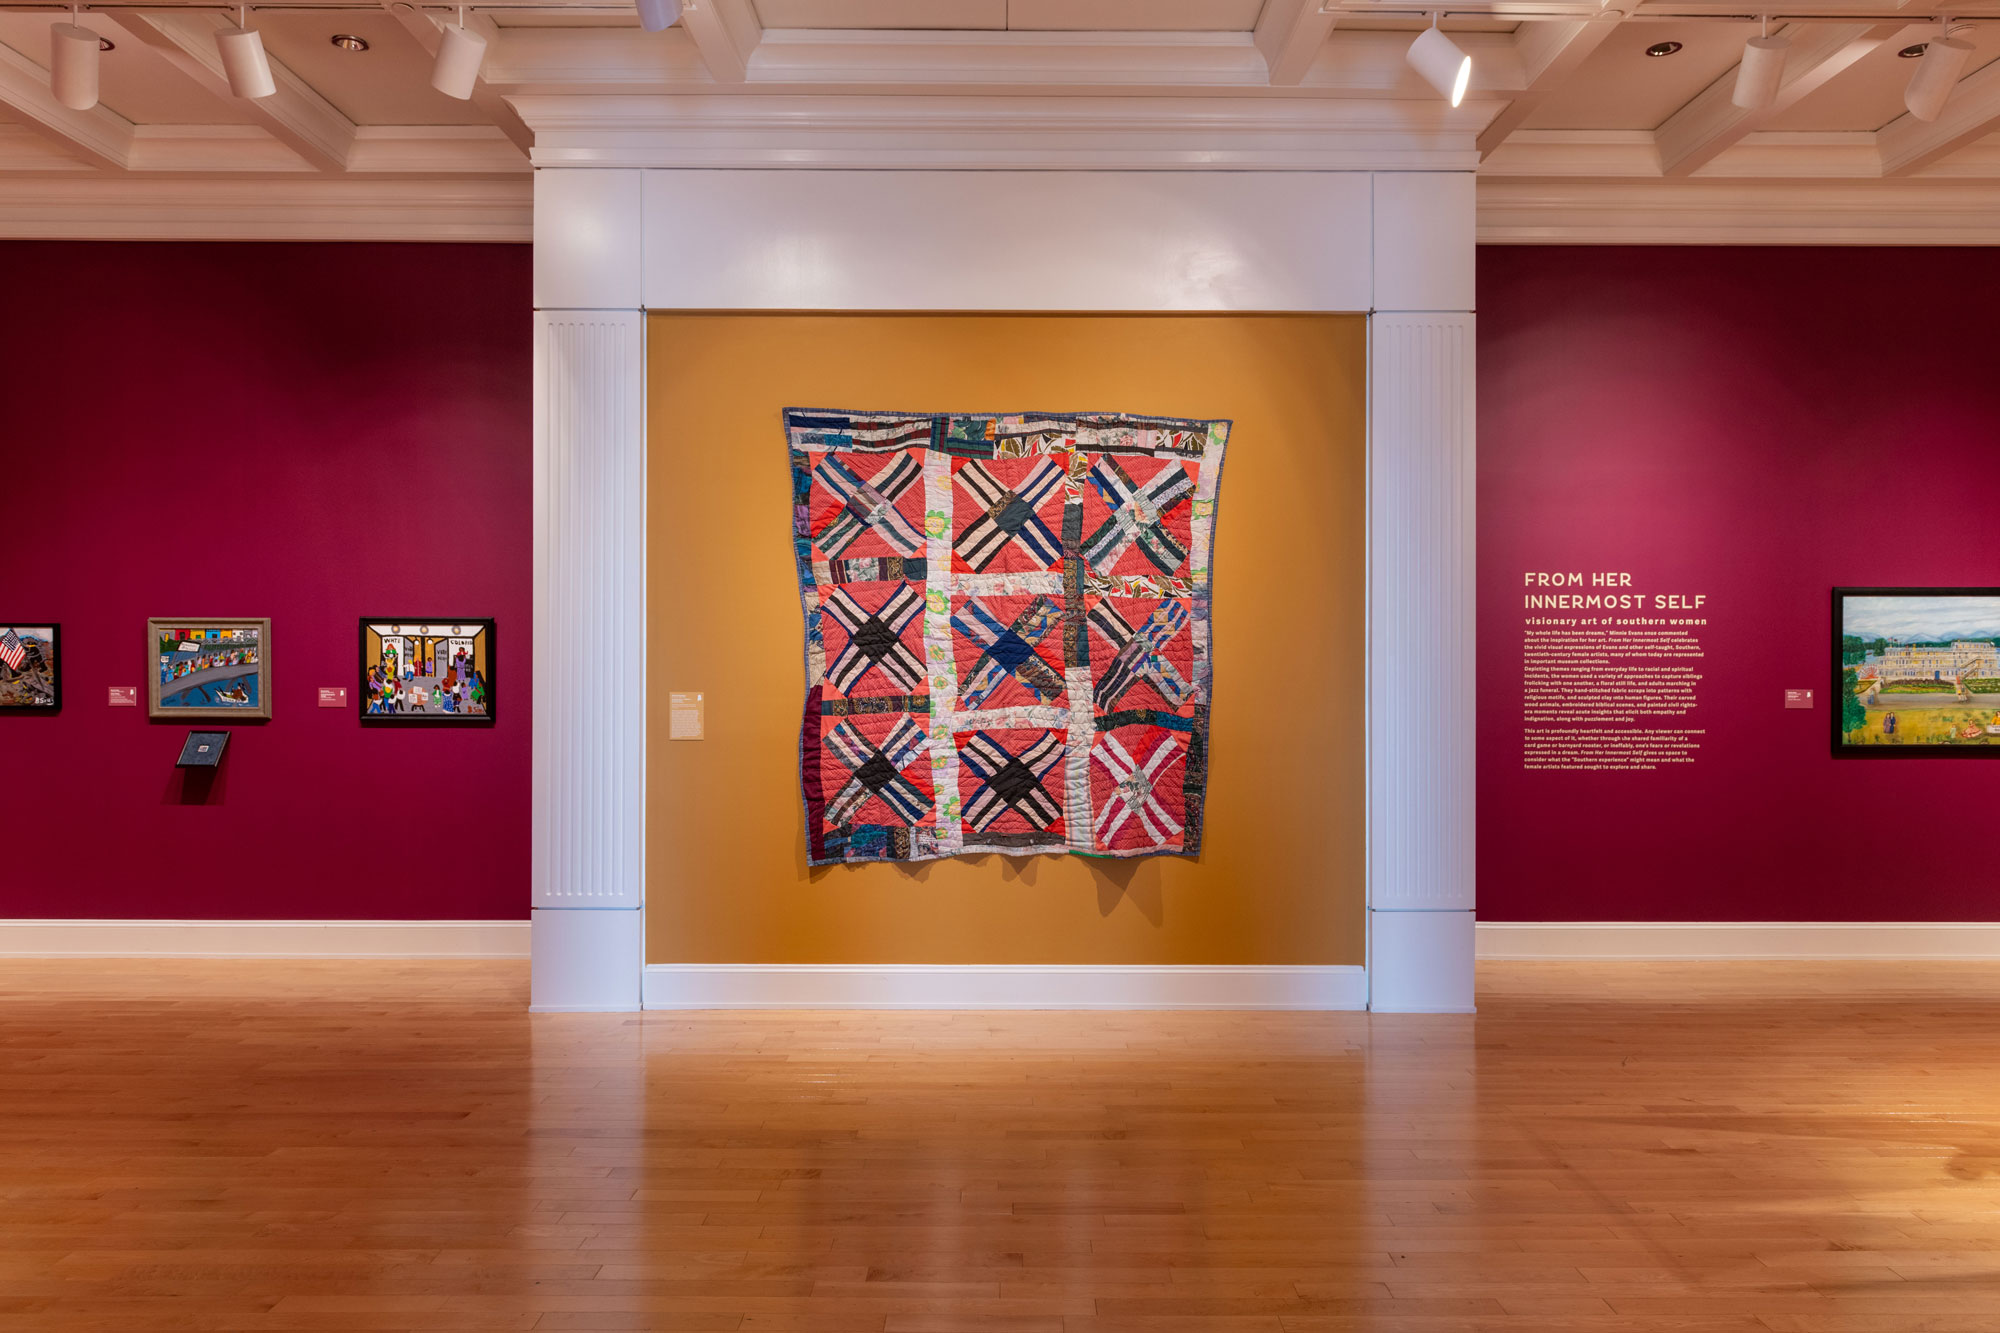 Gallery installation of quilt